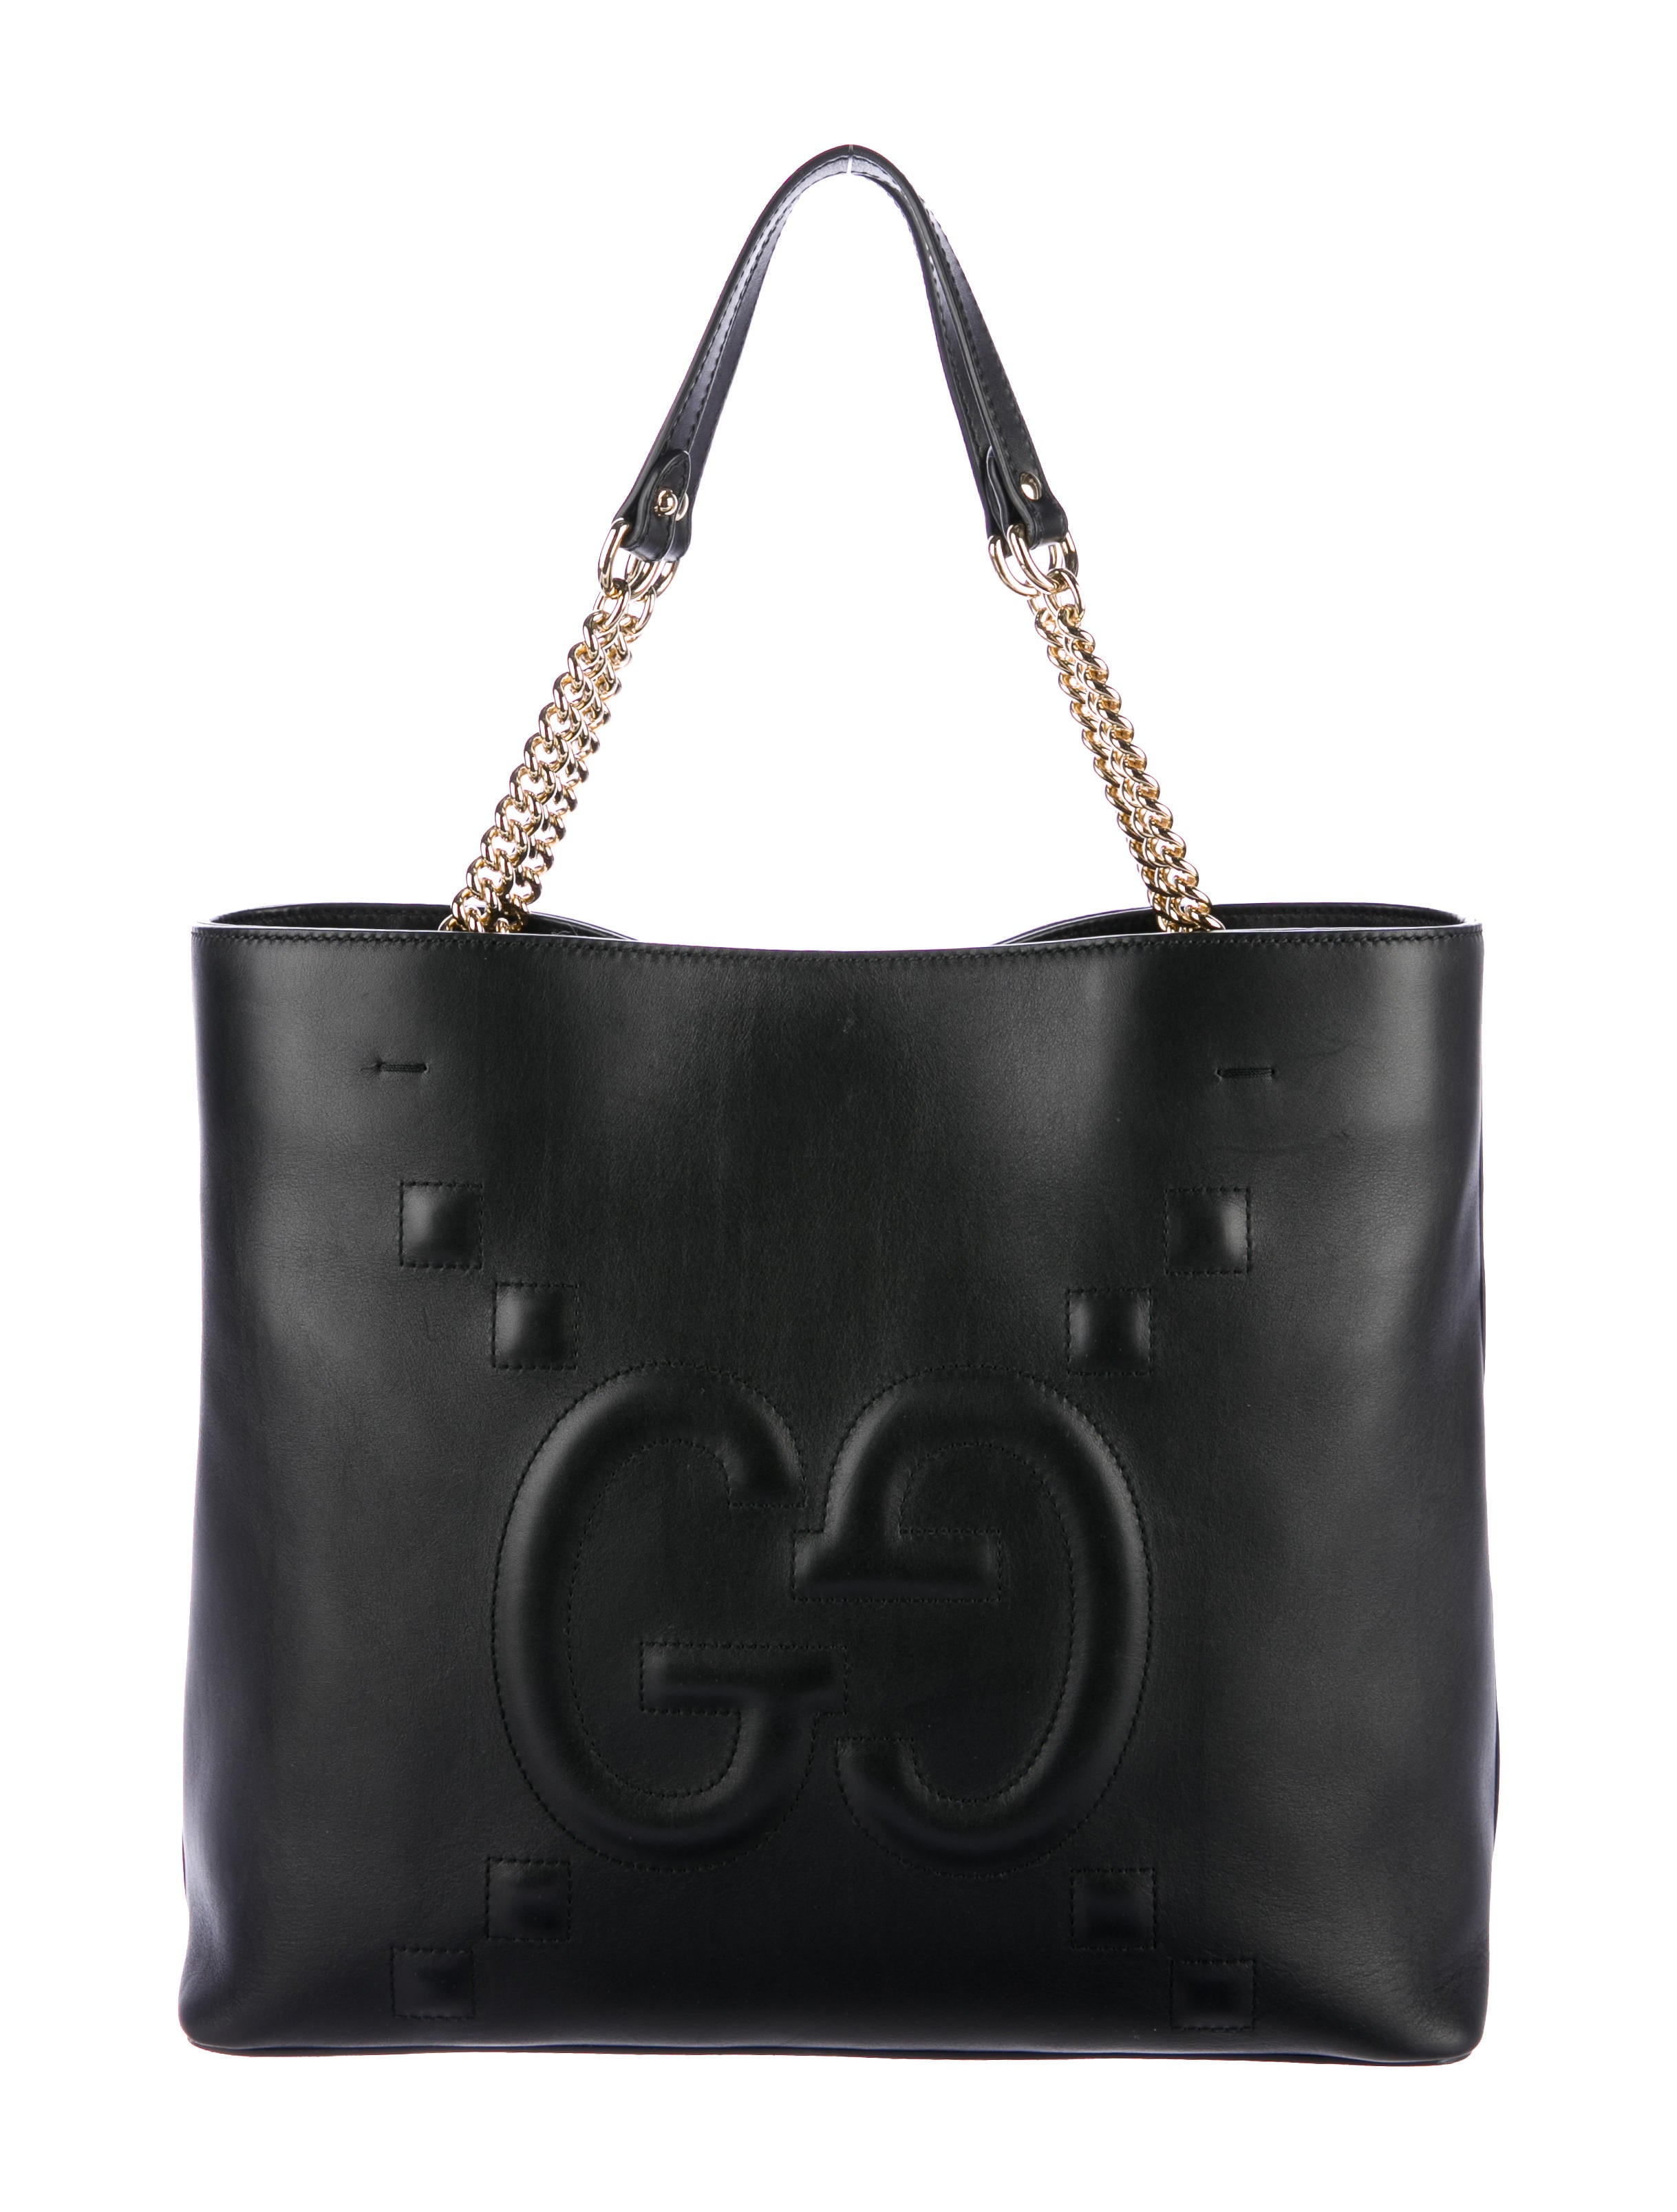 95c7e4190593 Gucci Embossed Leather Tote Bags | Stanford Center for Opportunity ...